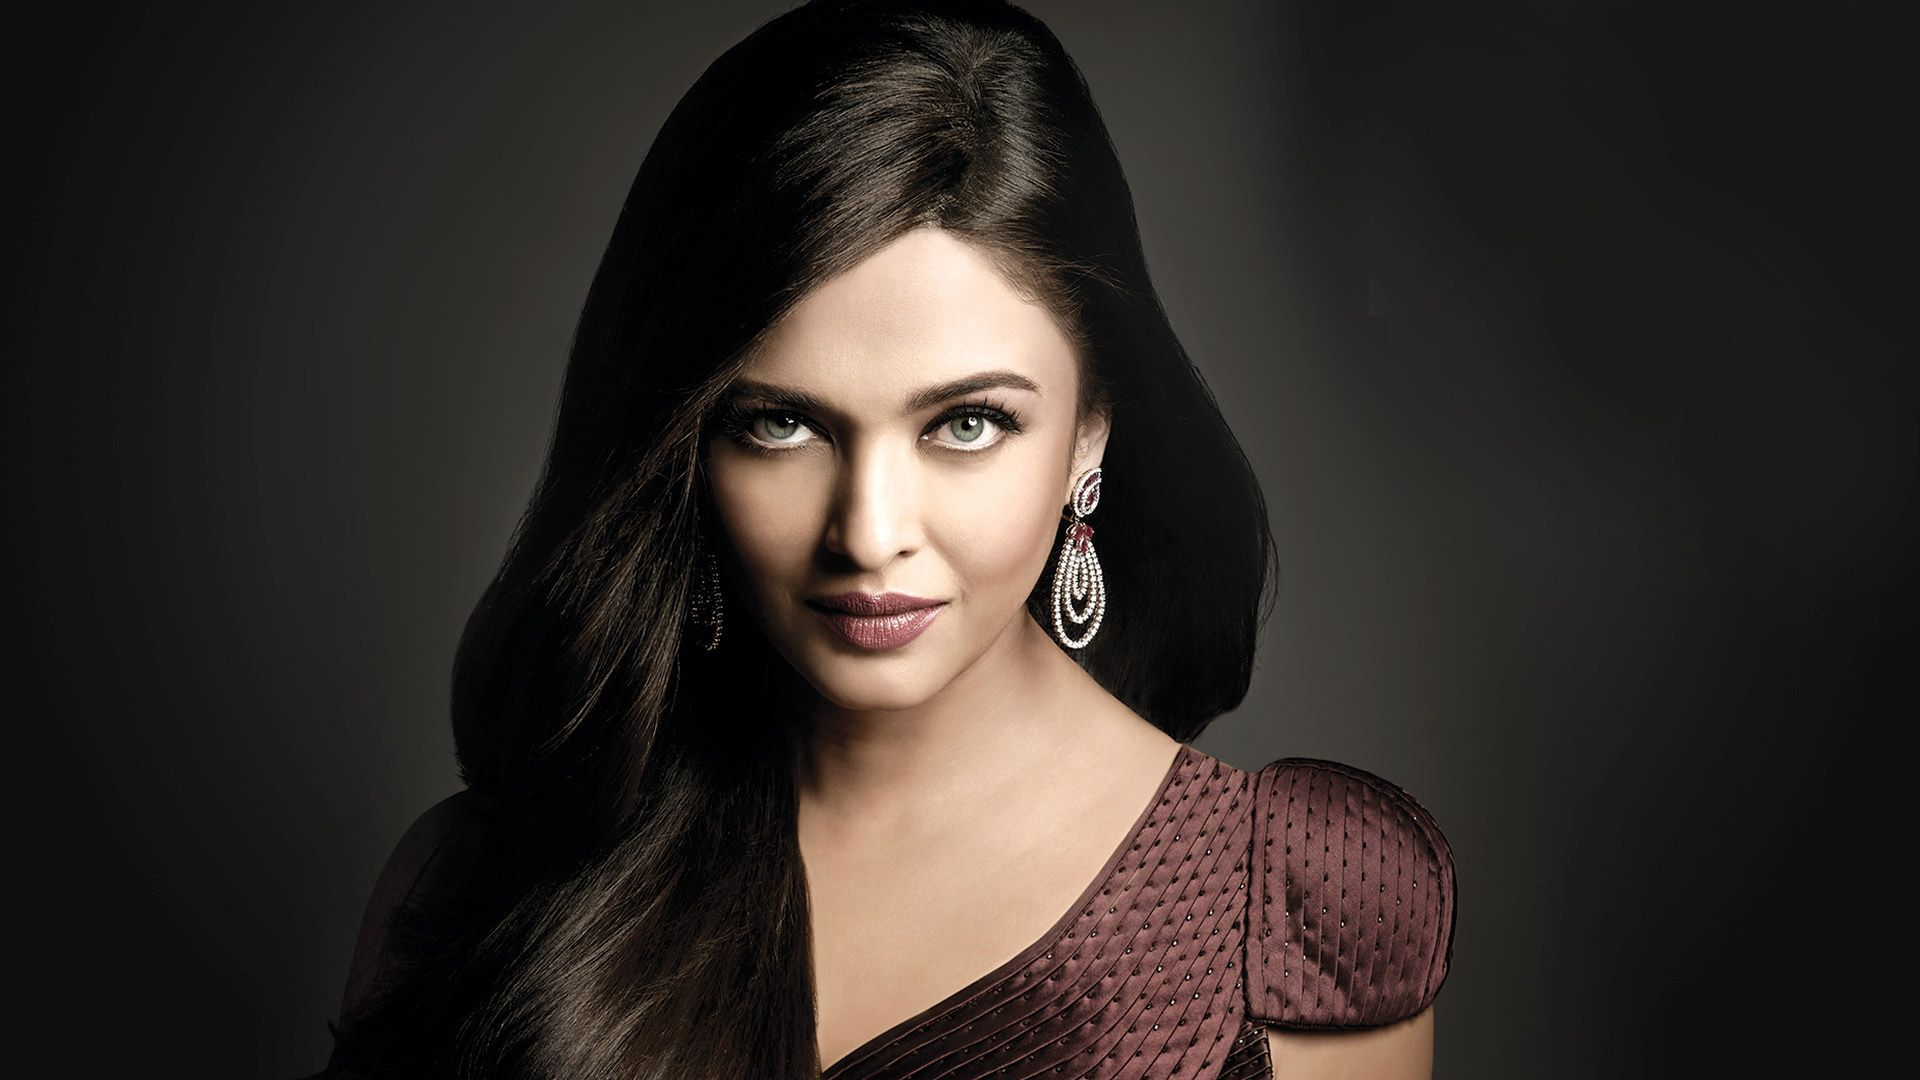 Http Wallpaperssfree Com Wp Content Uploads 2013 06 Aishwarya Rai Old Hd Wallpapers Jpg Aishwarya Rai Wallpaper Aishwarya Rai Aishwarya Rai Bachchan